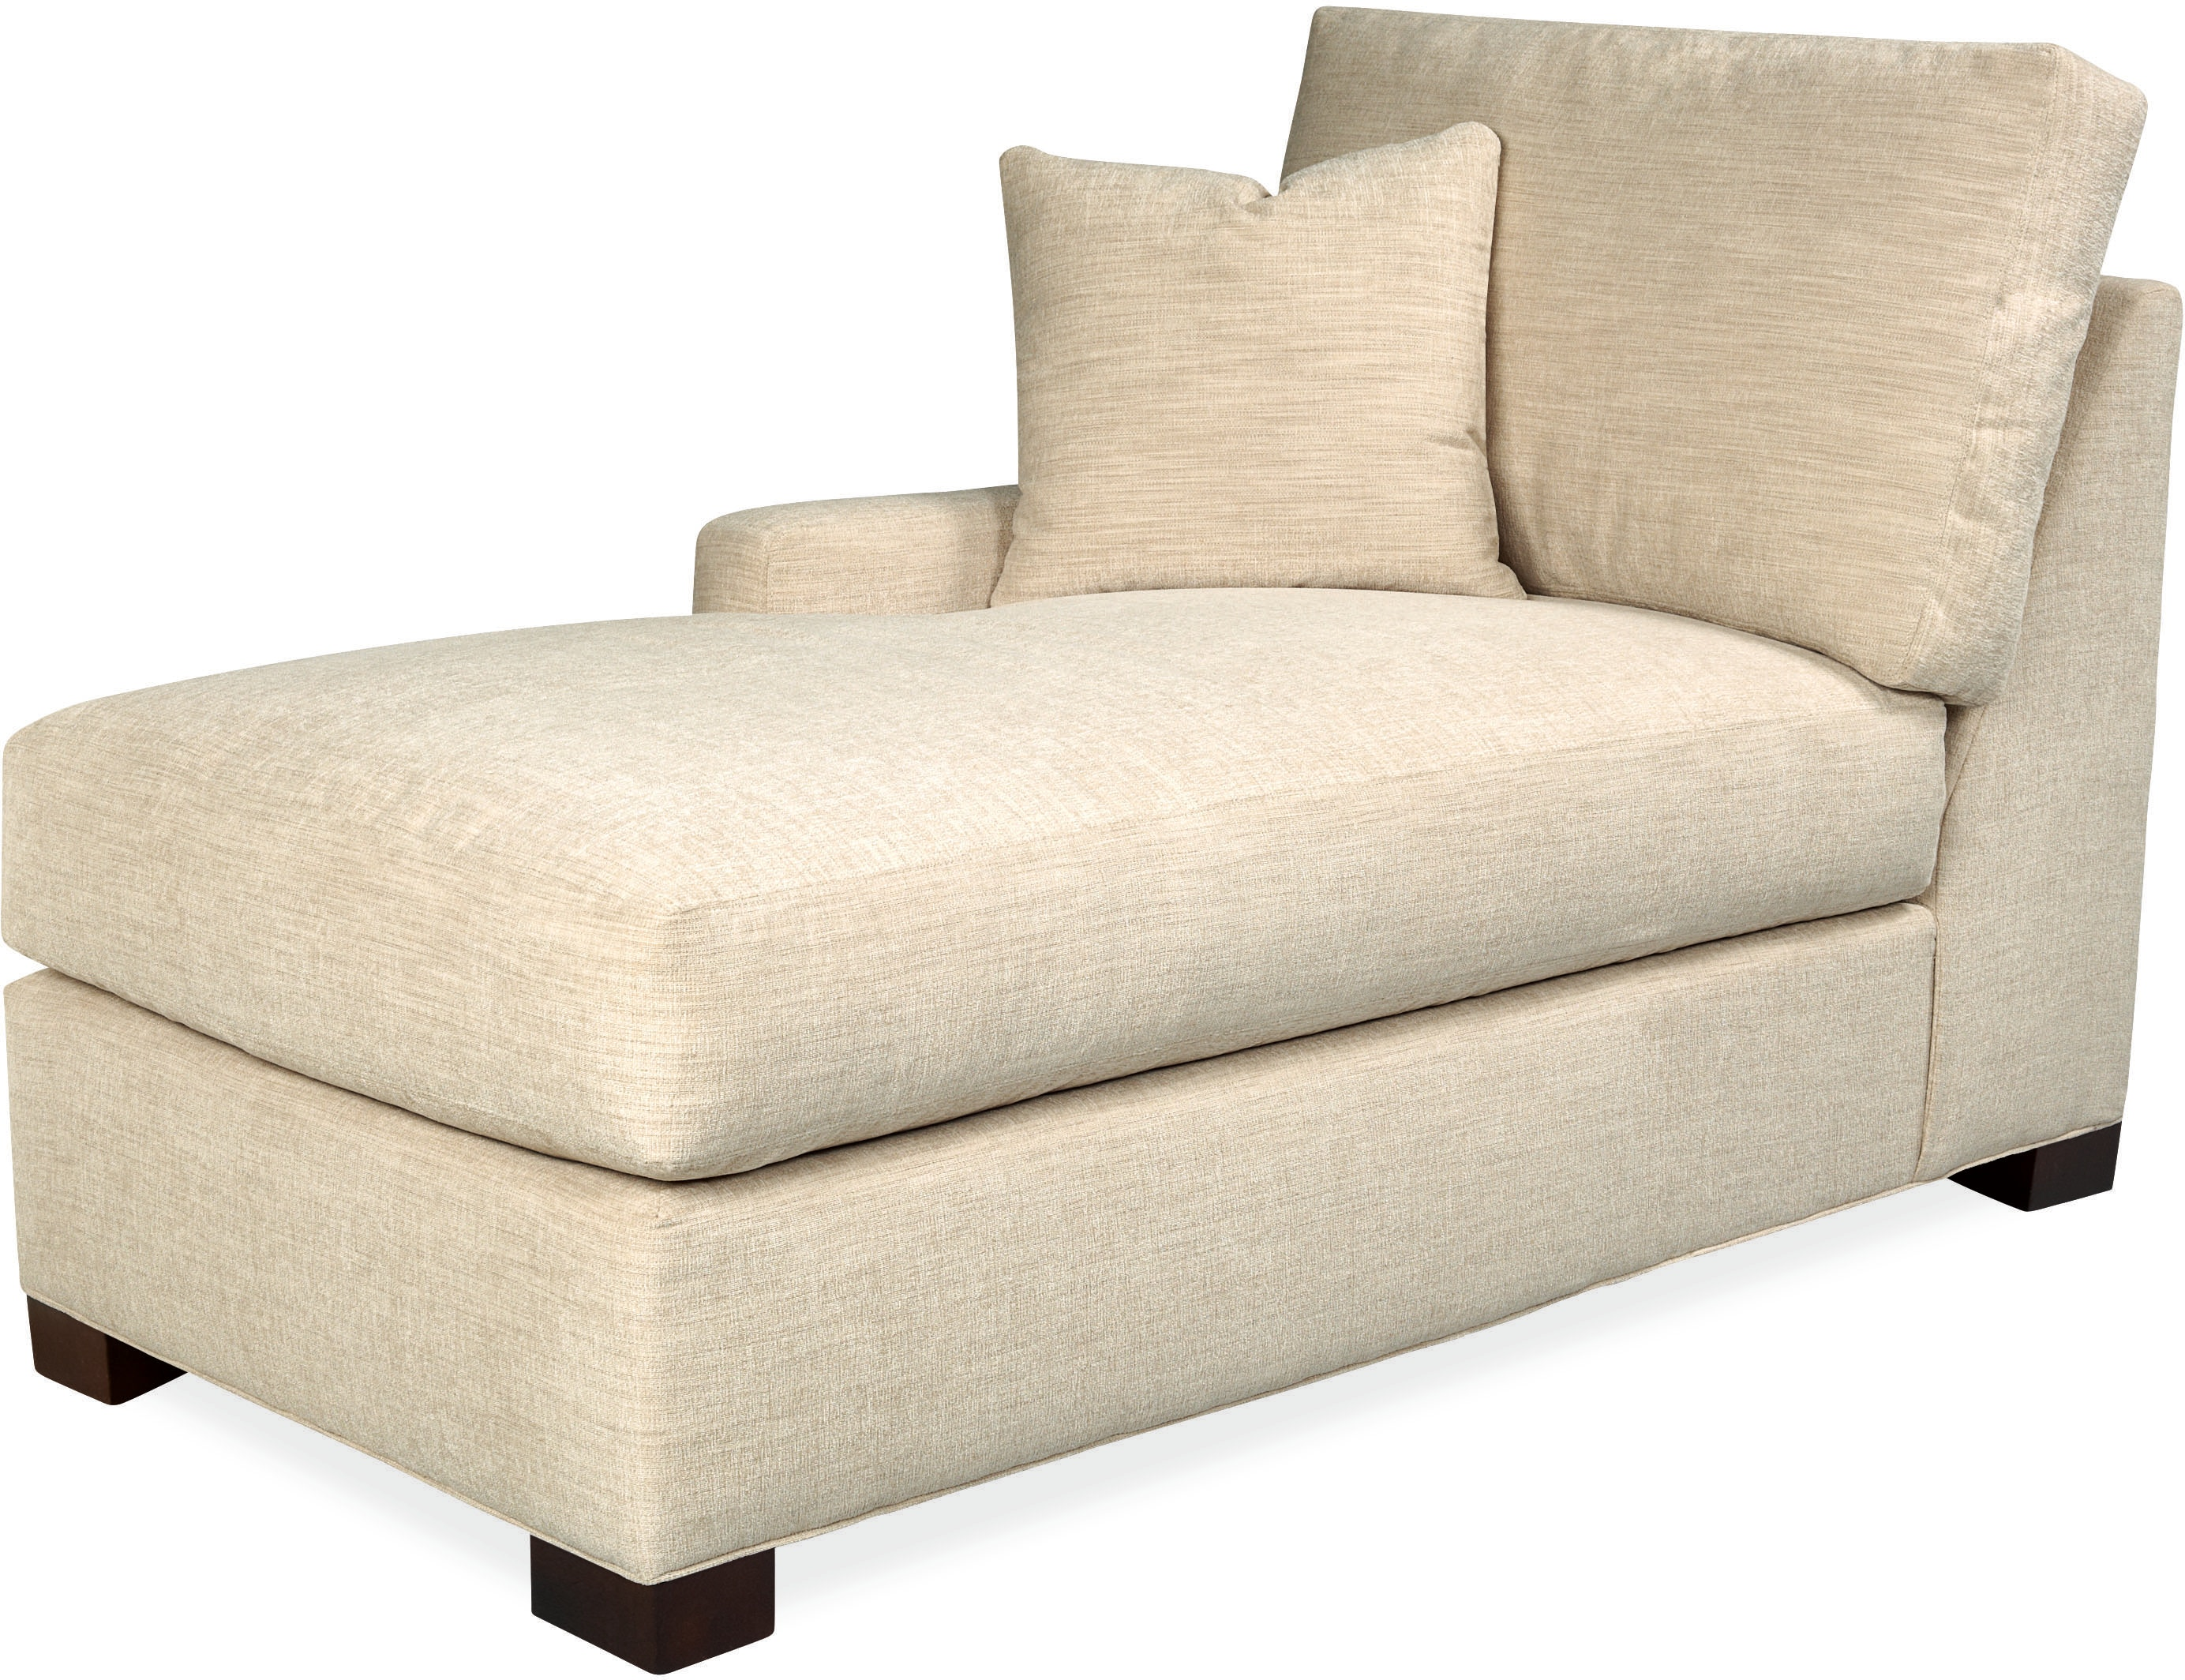 Lee Industries Living Room One Arm Chaise 5732 85lf Oasis Rug  ~ One Arm Sofa With Chaise